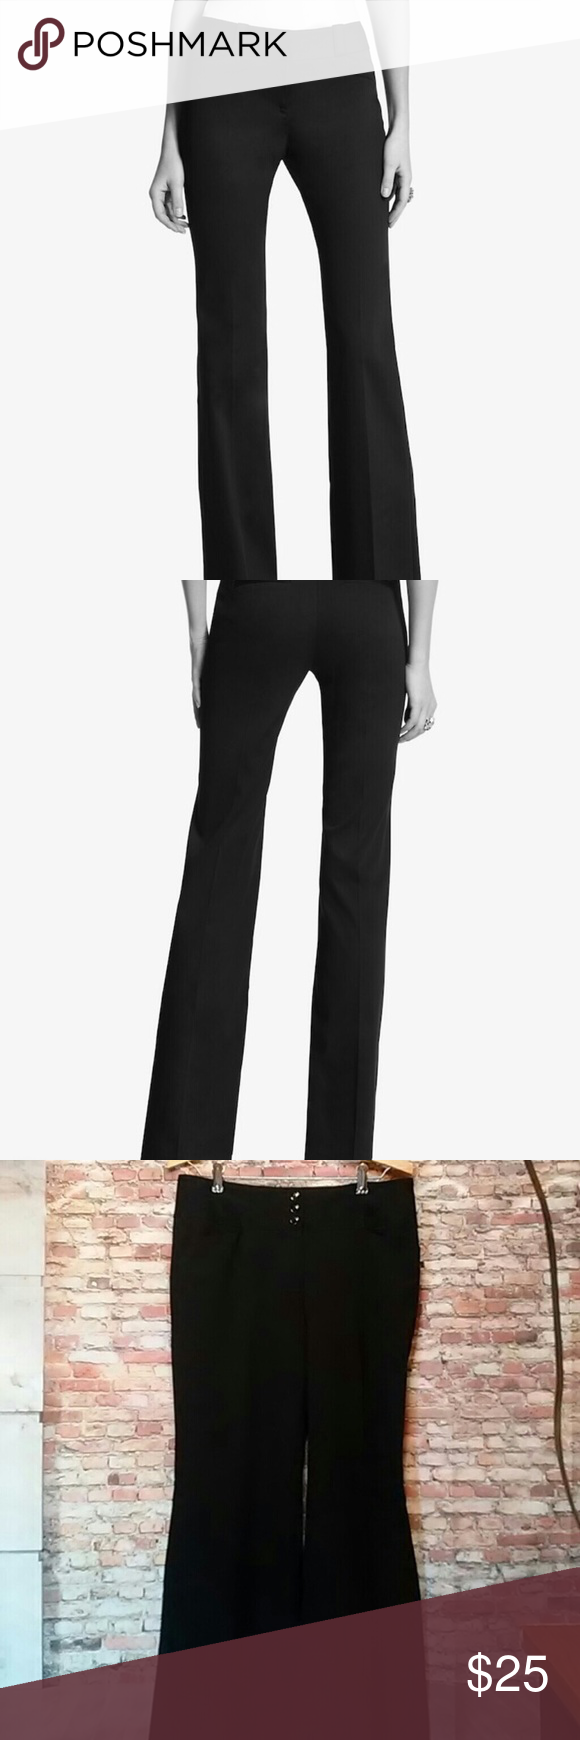 83dd9bf50d9fa0 White House Black Market Legacy Pant Style your best in this beautiful  pants Boot cut Perfect condition Buttons and zipper all working and in tact  No holes ...